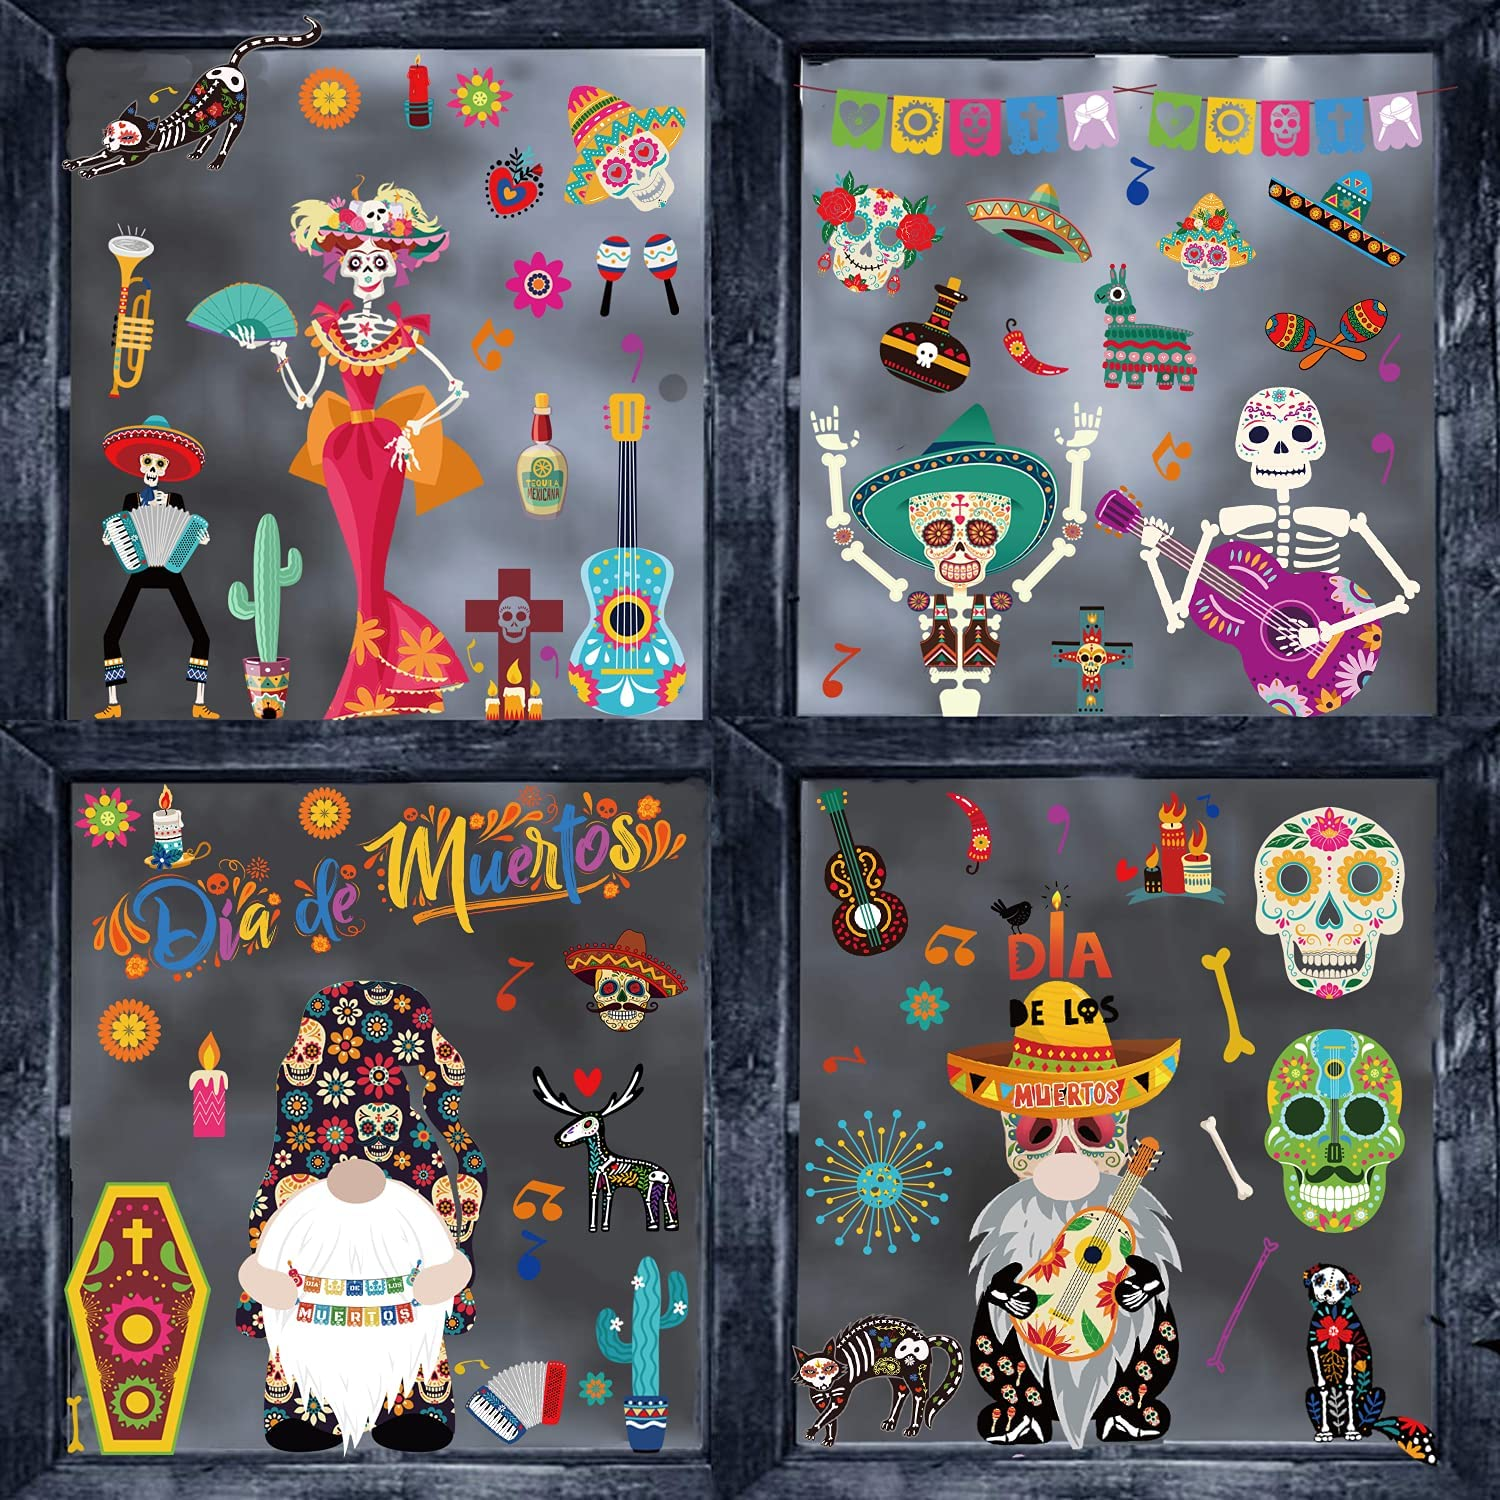 Halloween Window Clings,141 PCS Day of The Dead Window Decorations Stickers Decals Sugar Skull Skeleton Window Decals for Halloween Dia de Los Muertos Party Supplies Decorations